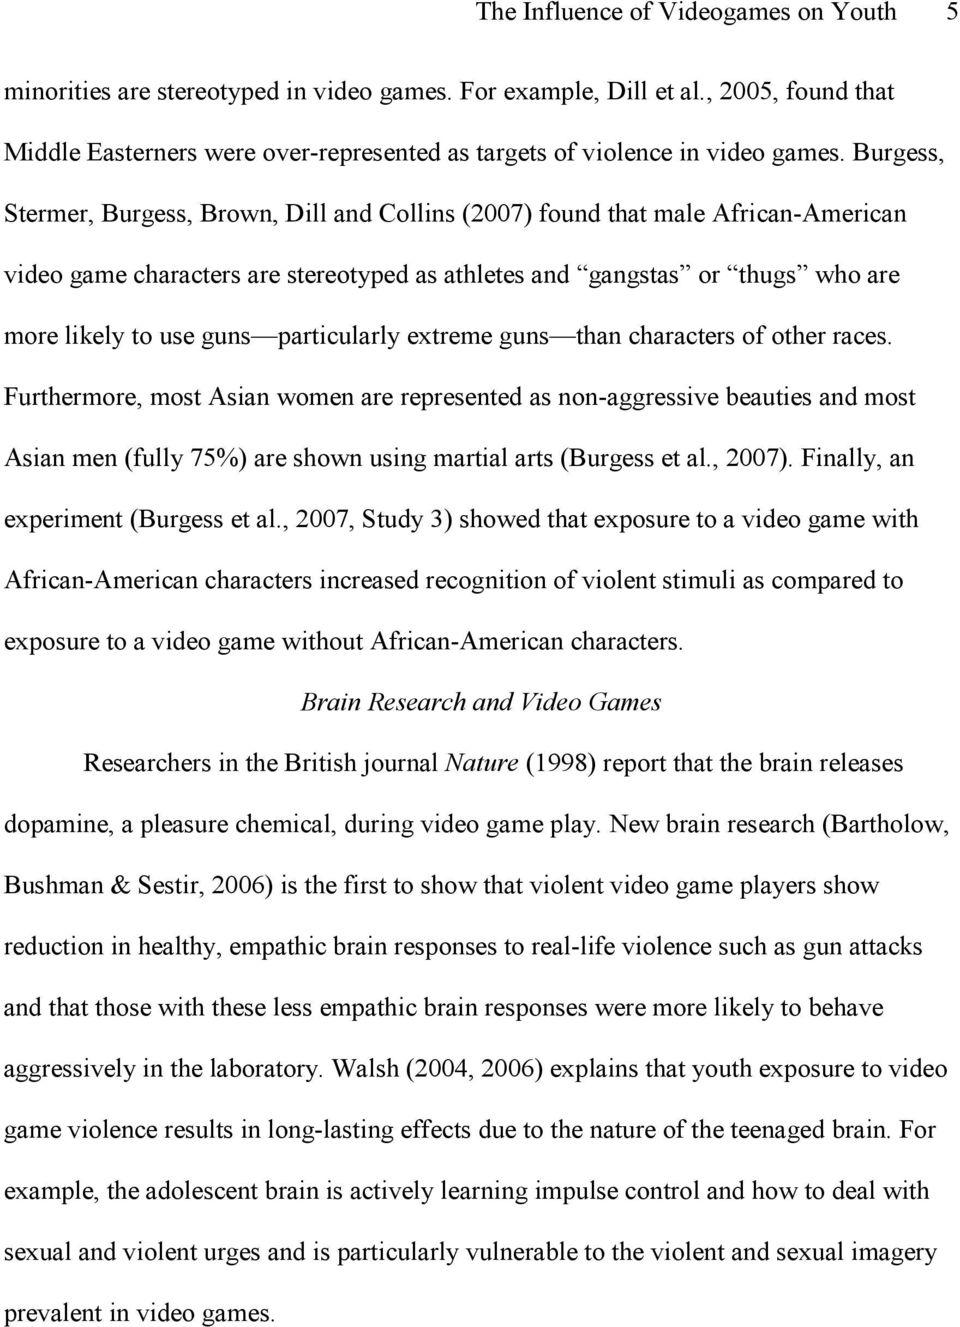 Burgess, Stermer, Burgess, Brown, Dill and Collins (2007) found that male African-American video game characters are stereotyped as athletes and gangstas or thugs who are more likely to use guns